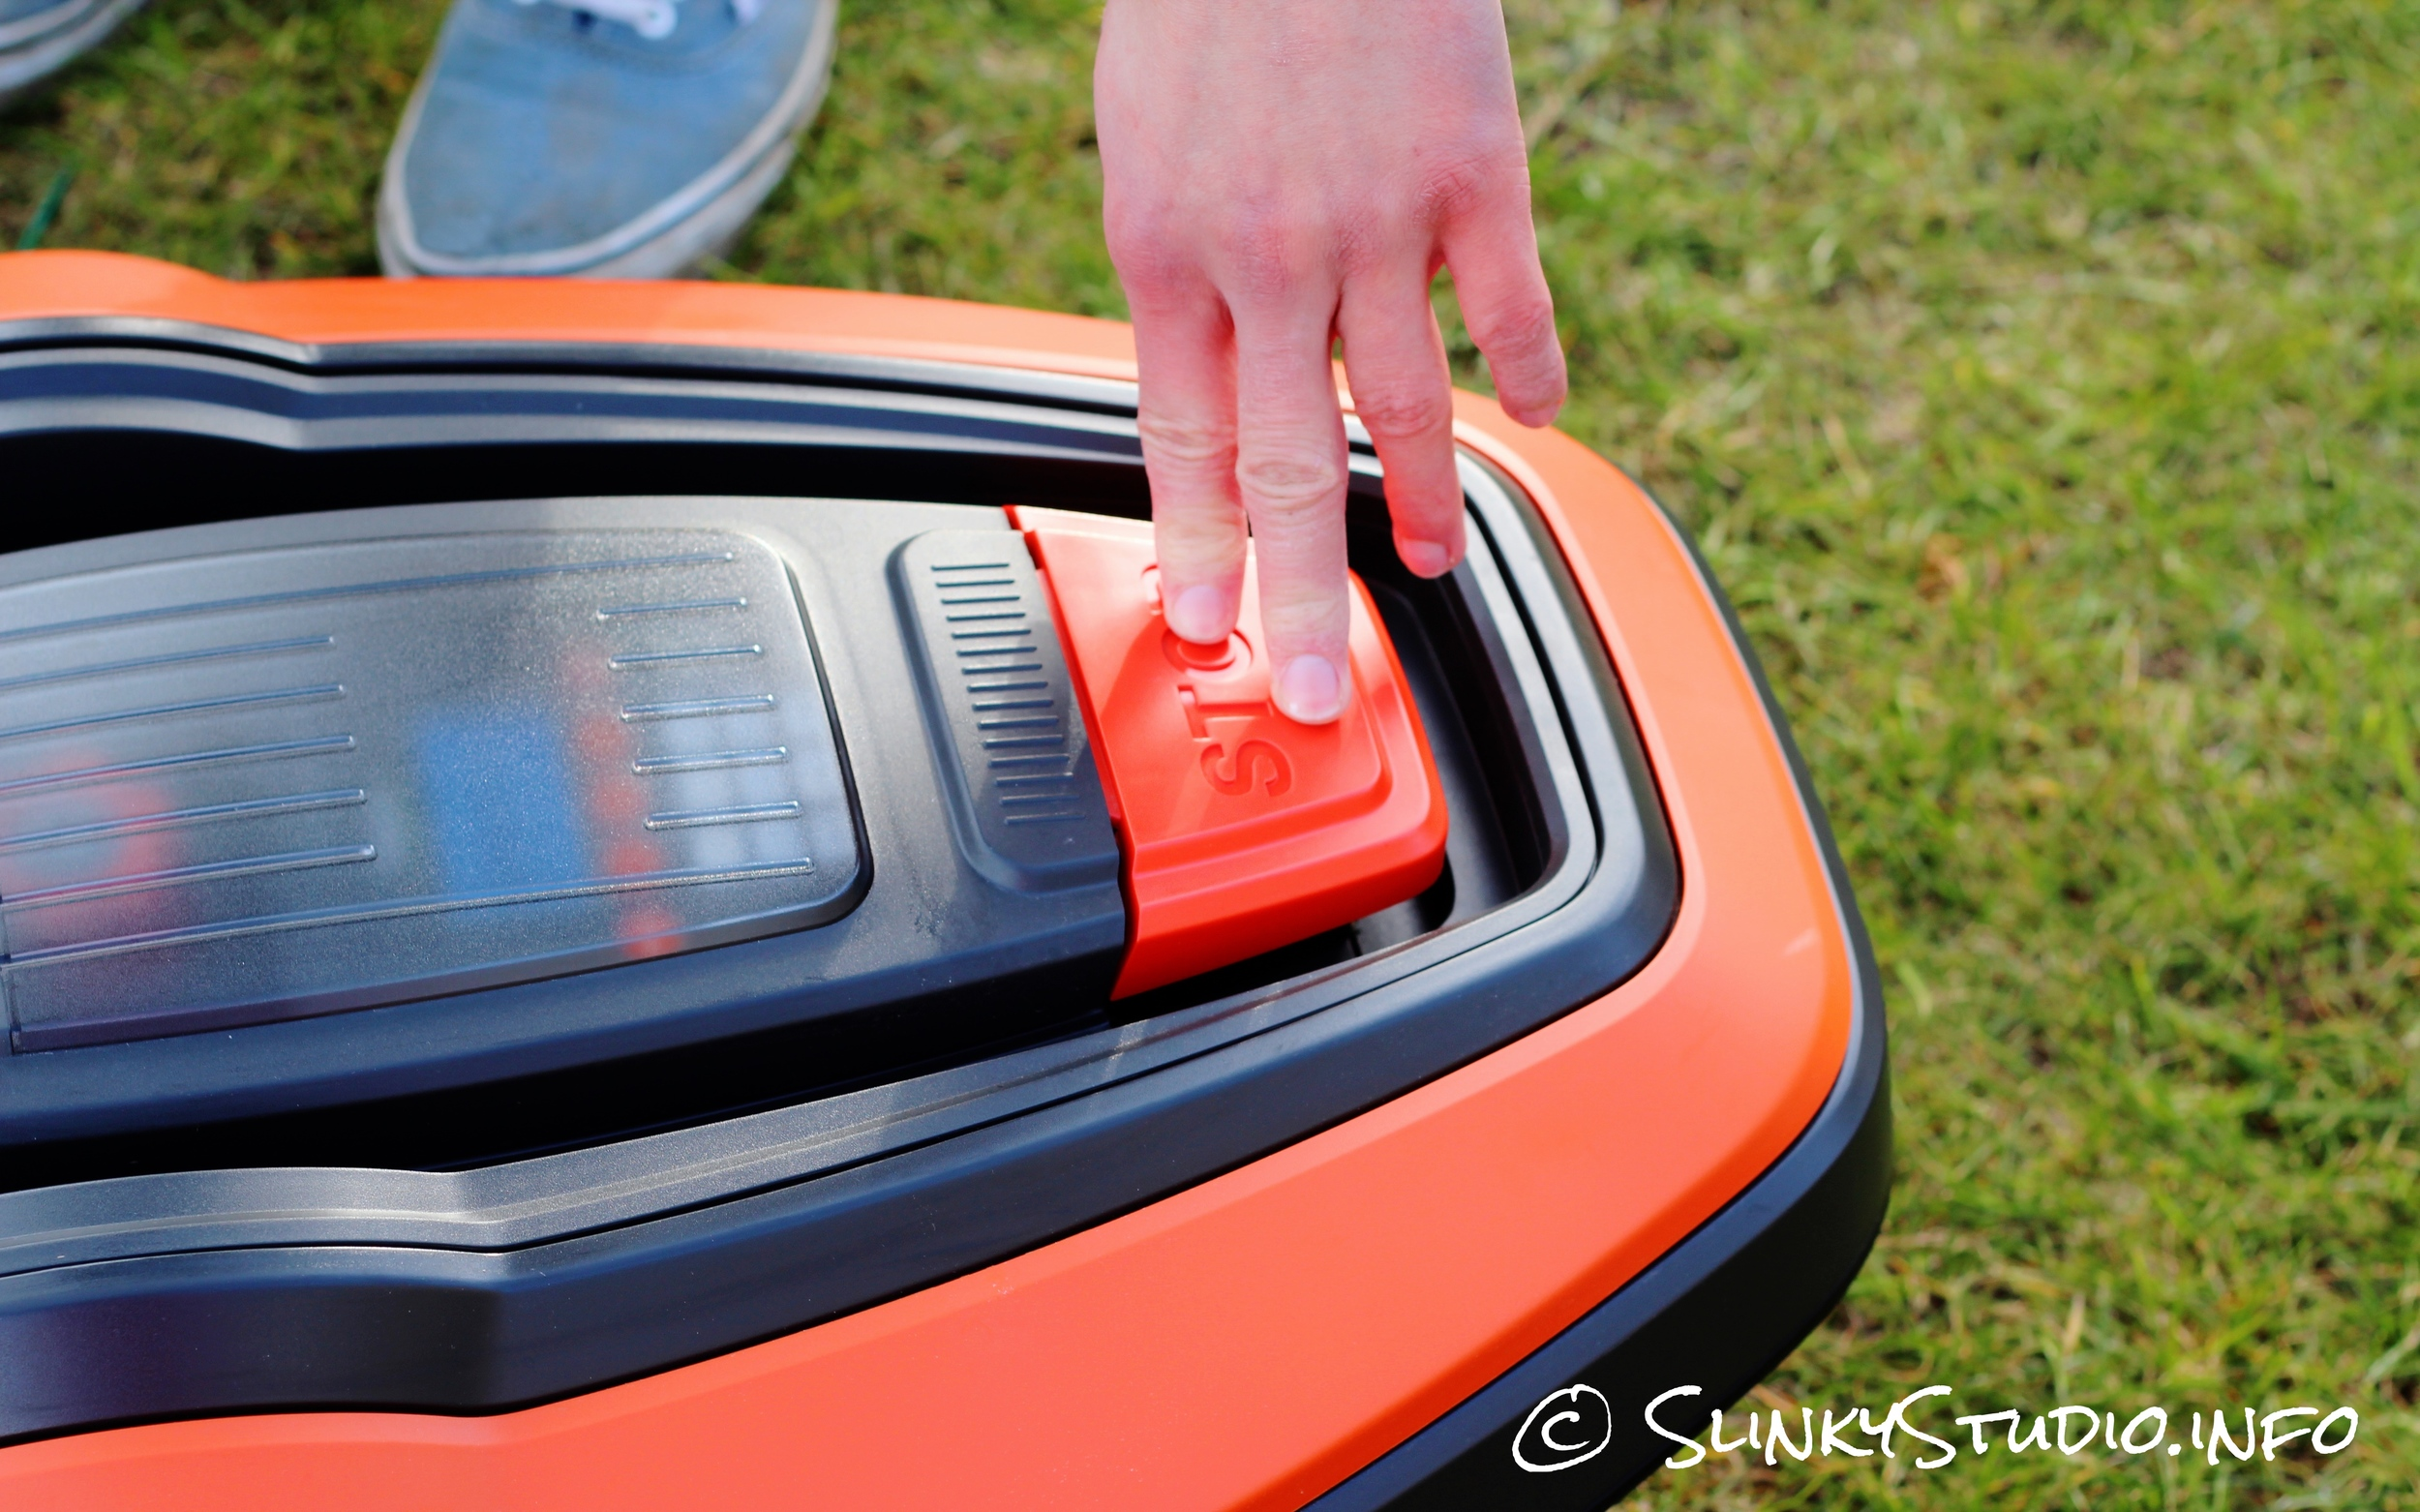 Flymo Robotic 1200R Lawnmower Stop Button being Pushed.jpg